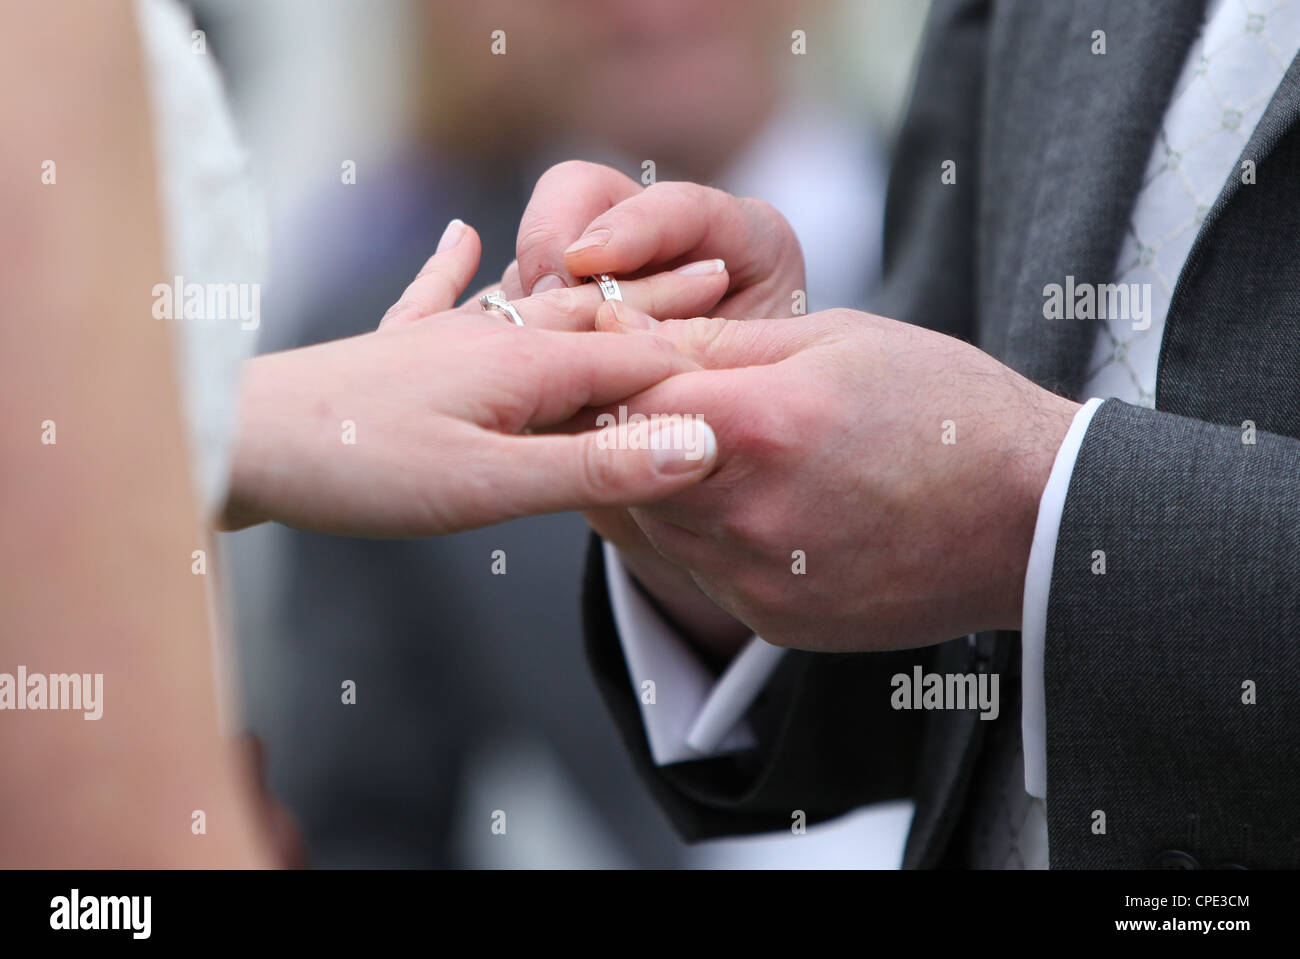 A couple exchange wedding rings during a marriage ceremony Picture